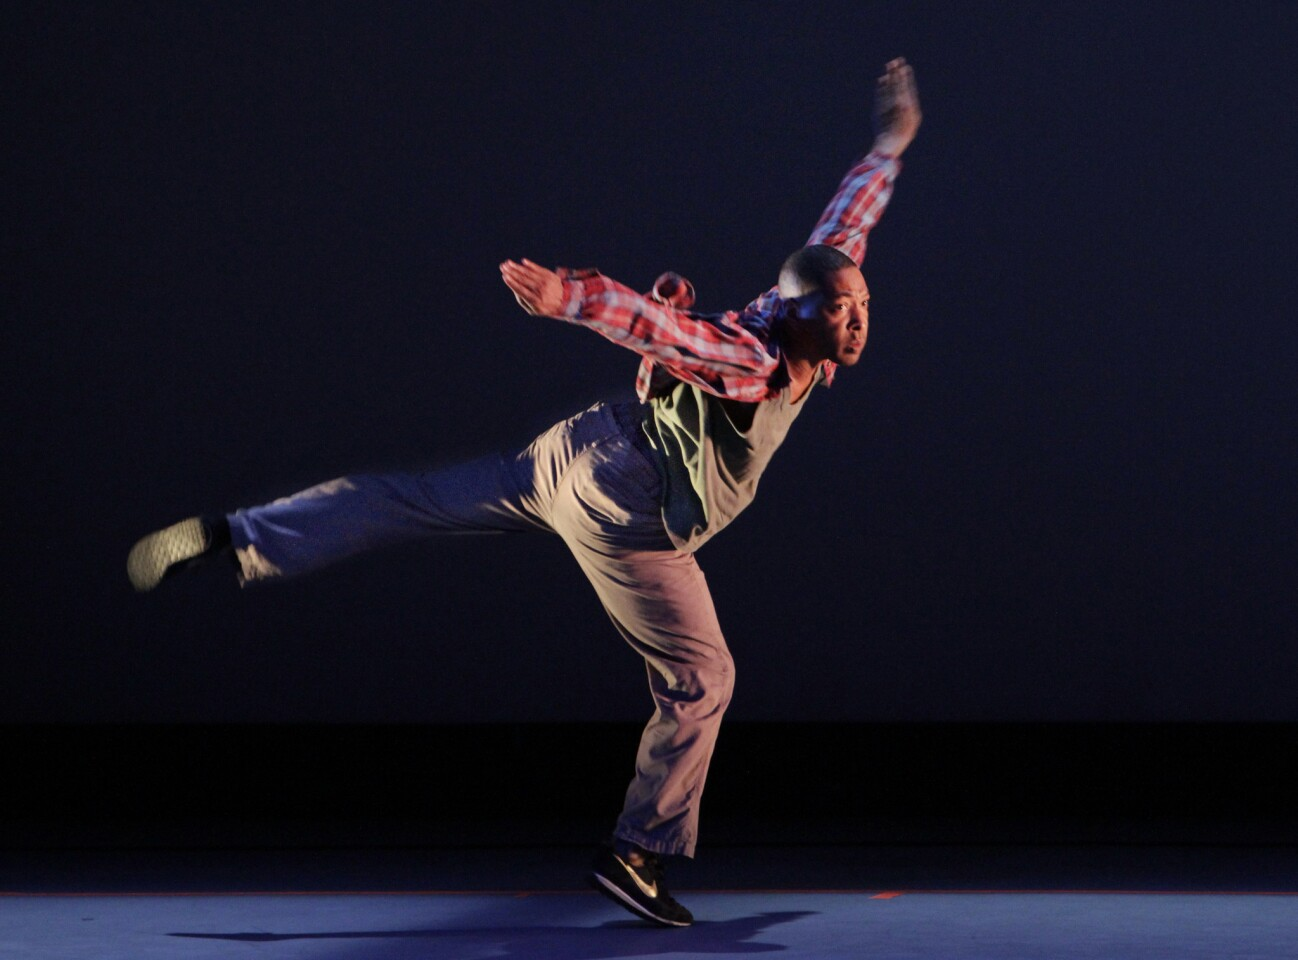 """""""Pavement"""" choreographer Kyle Abraham also dances in the meditation on """"Boyz N the Hood"""" and street life in L.A.'s Crenshaw district."""